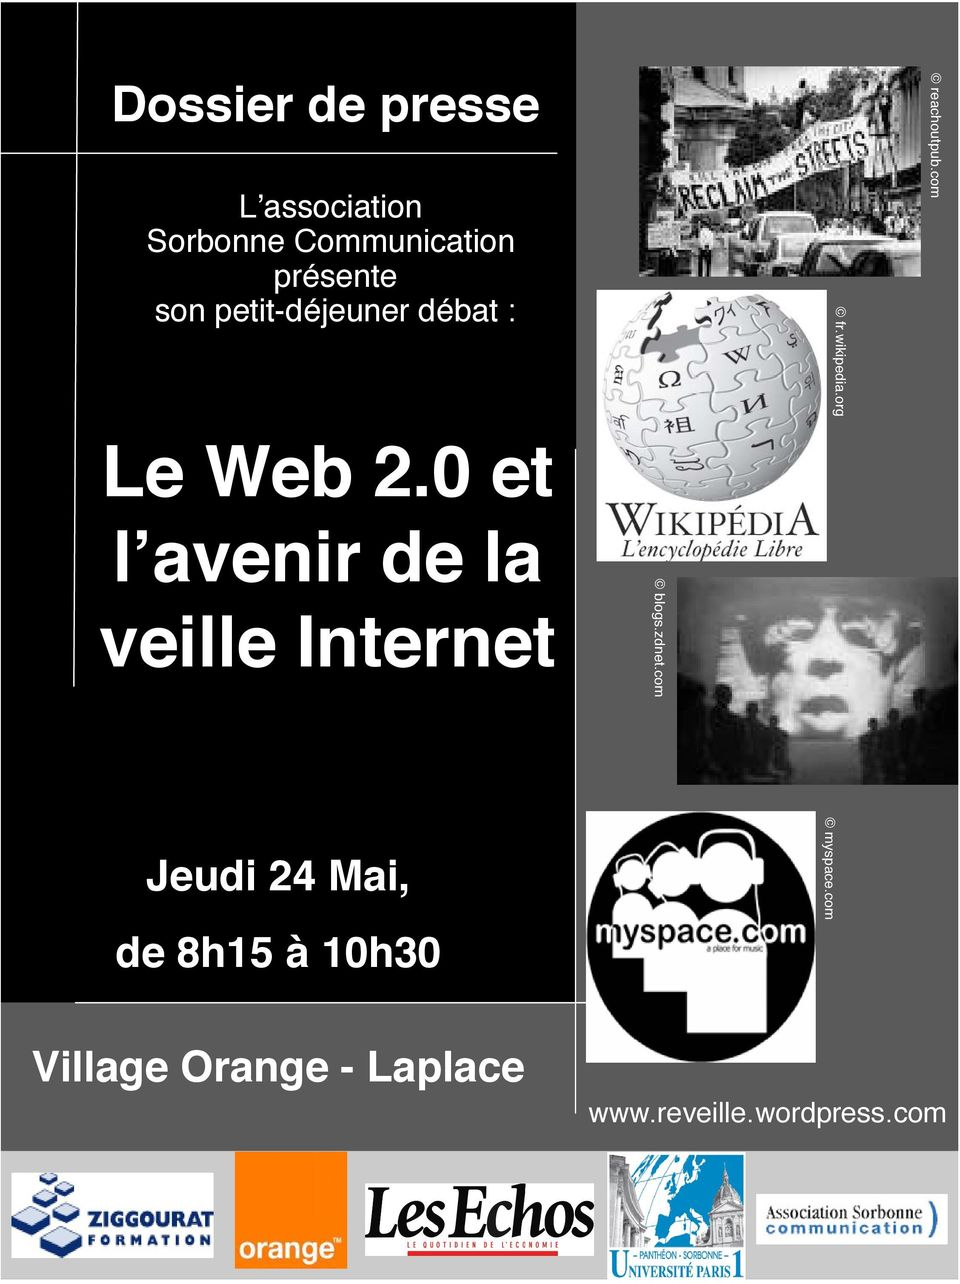 wikipedia.org reachoutpub.